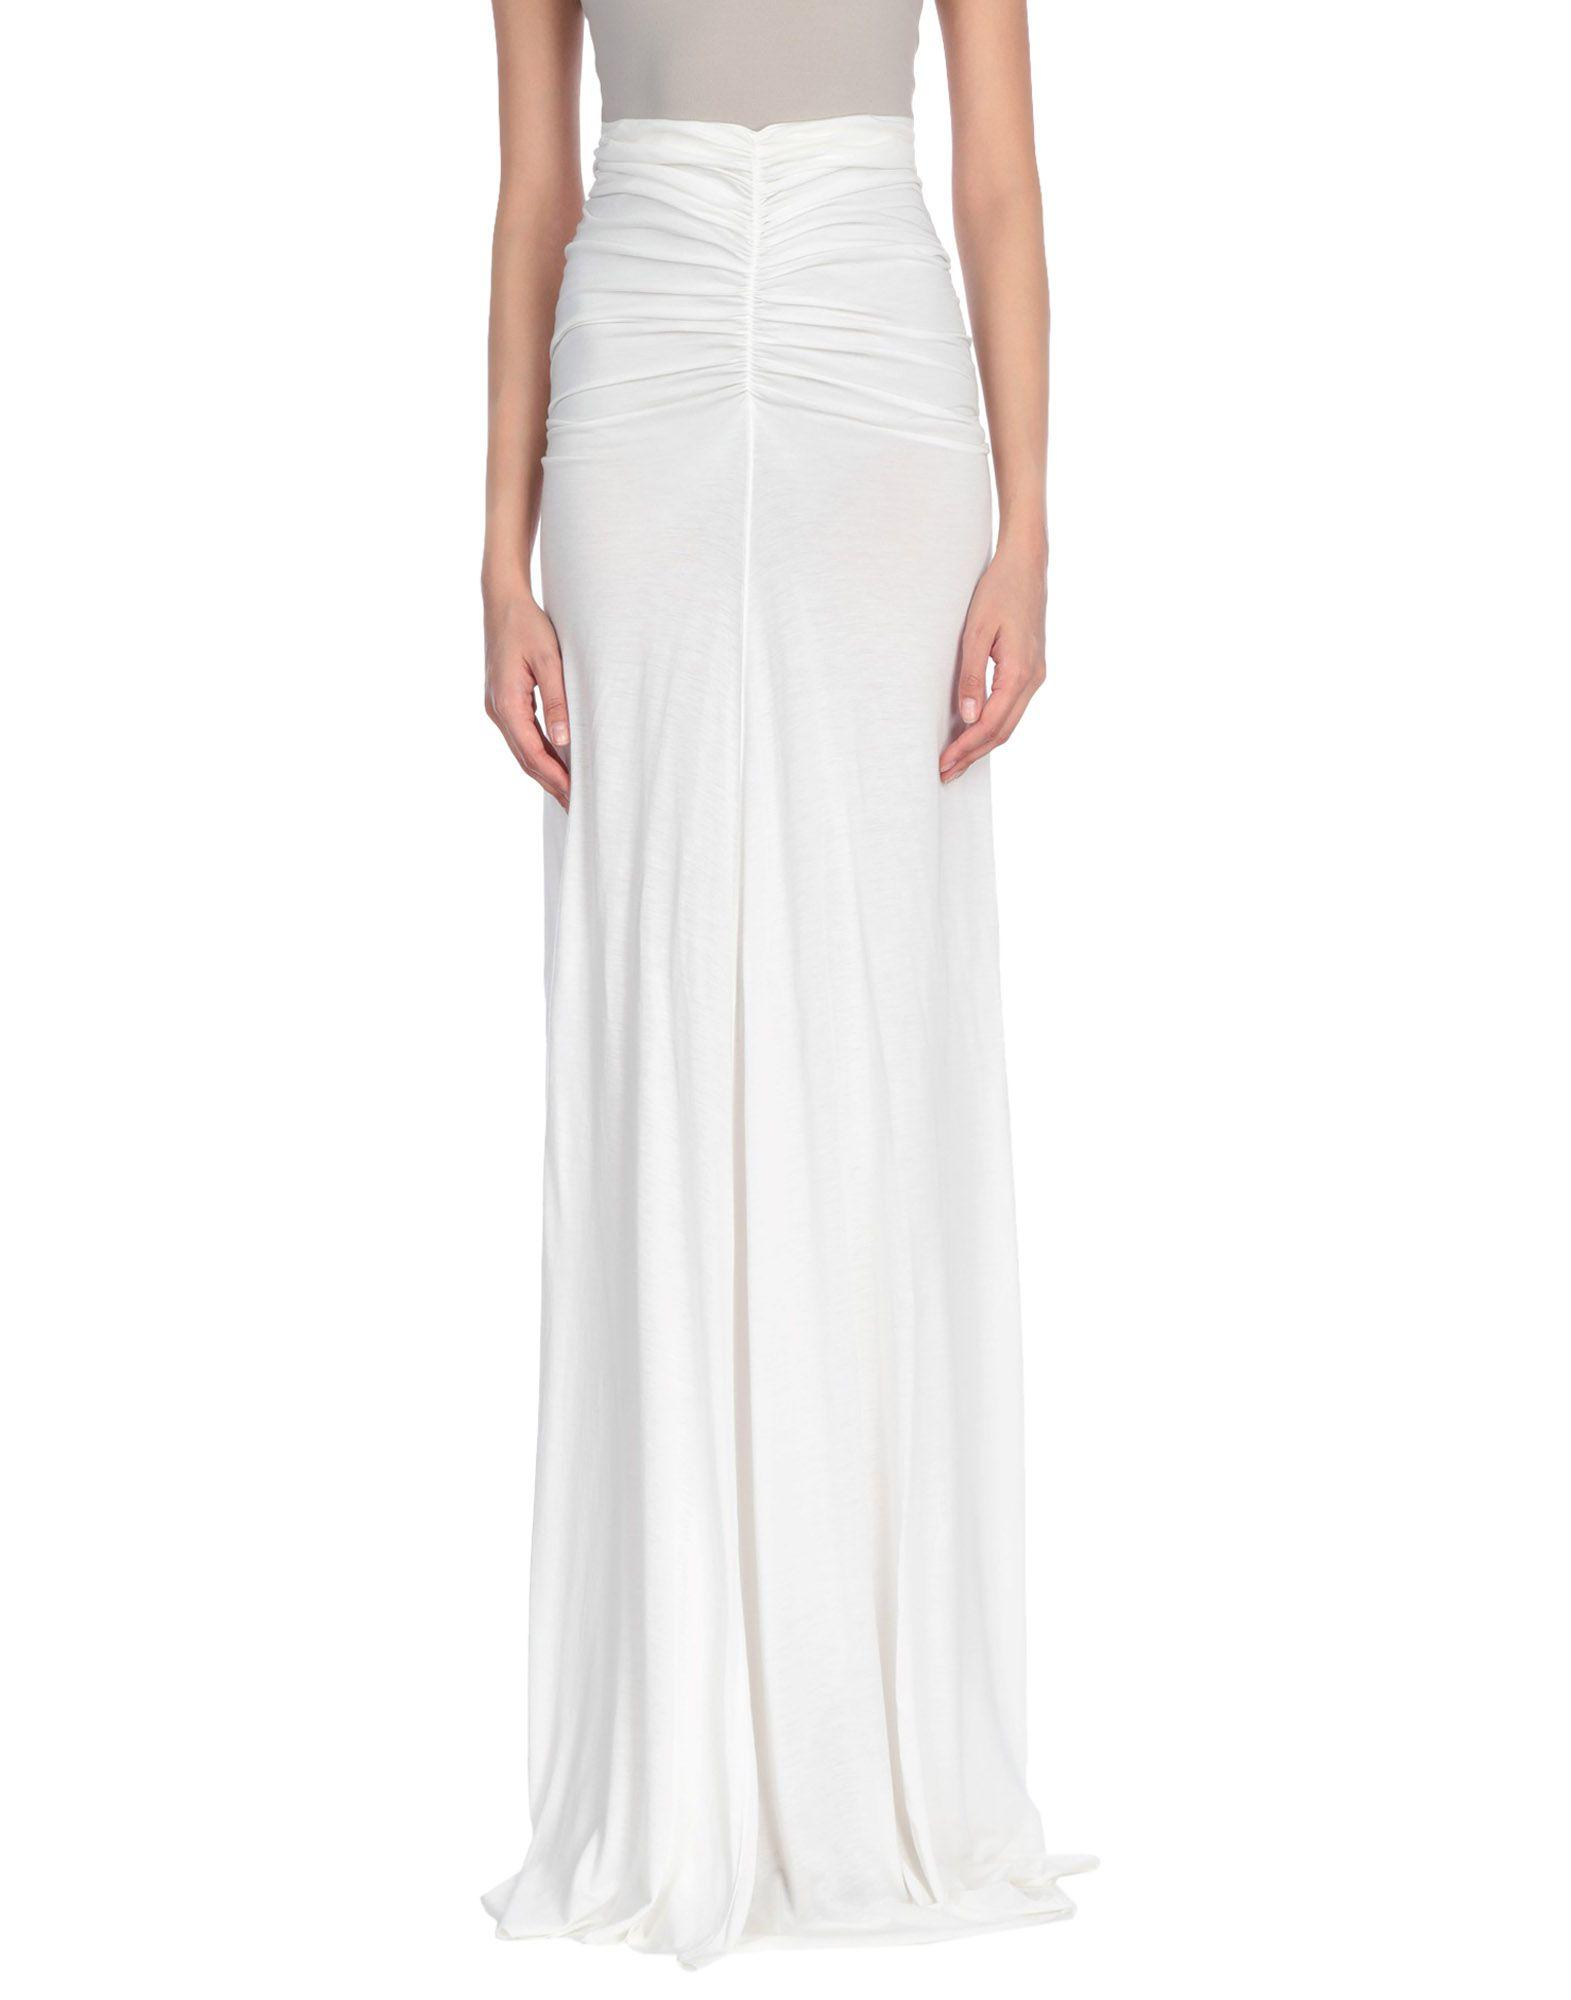 6209c428739 Lyst - Rick Owens Lilies Long Skirt in White